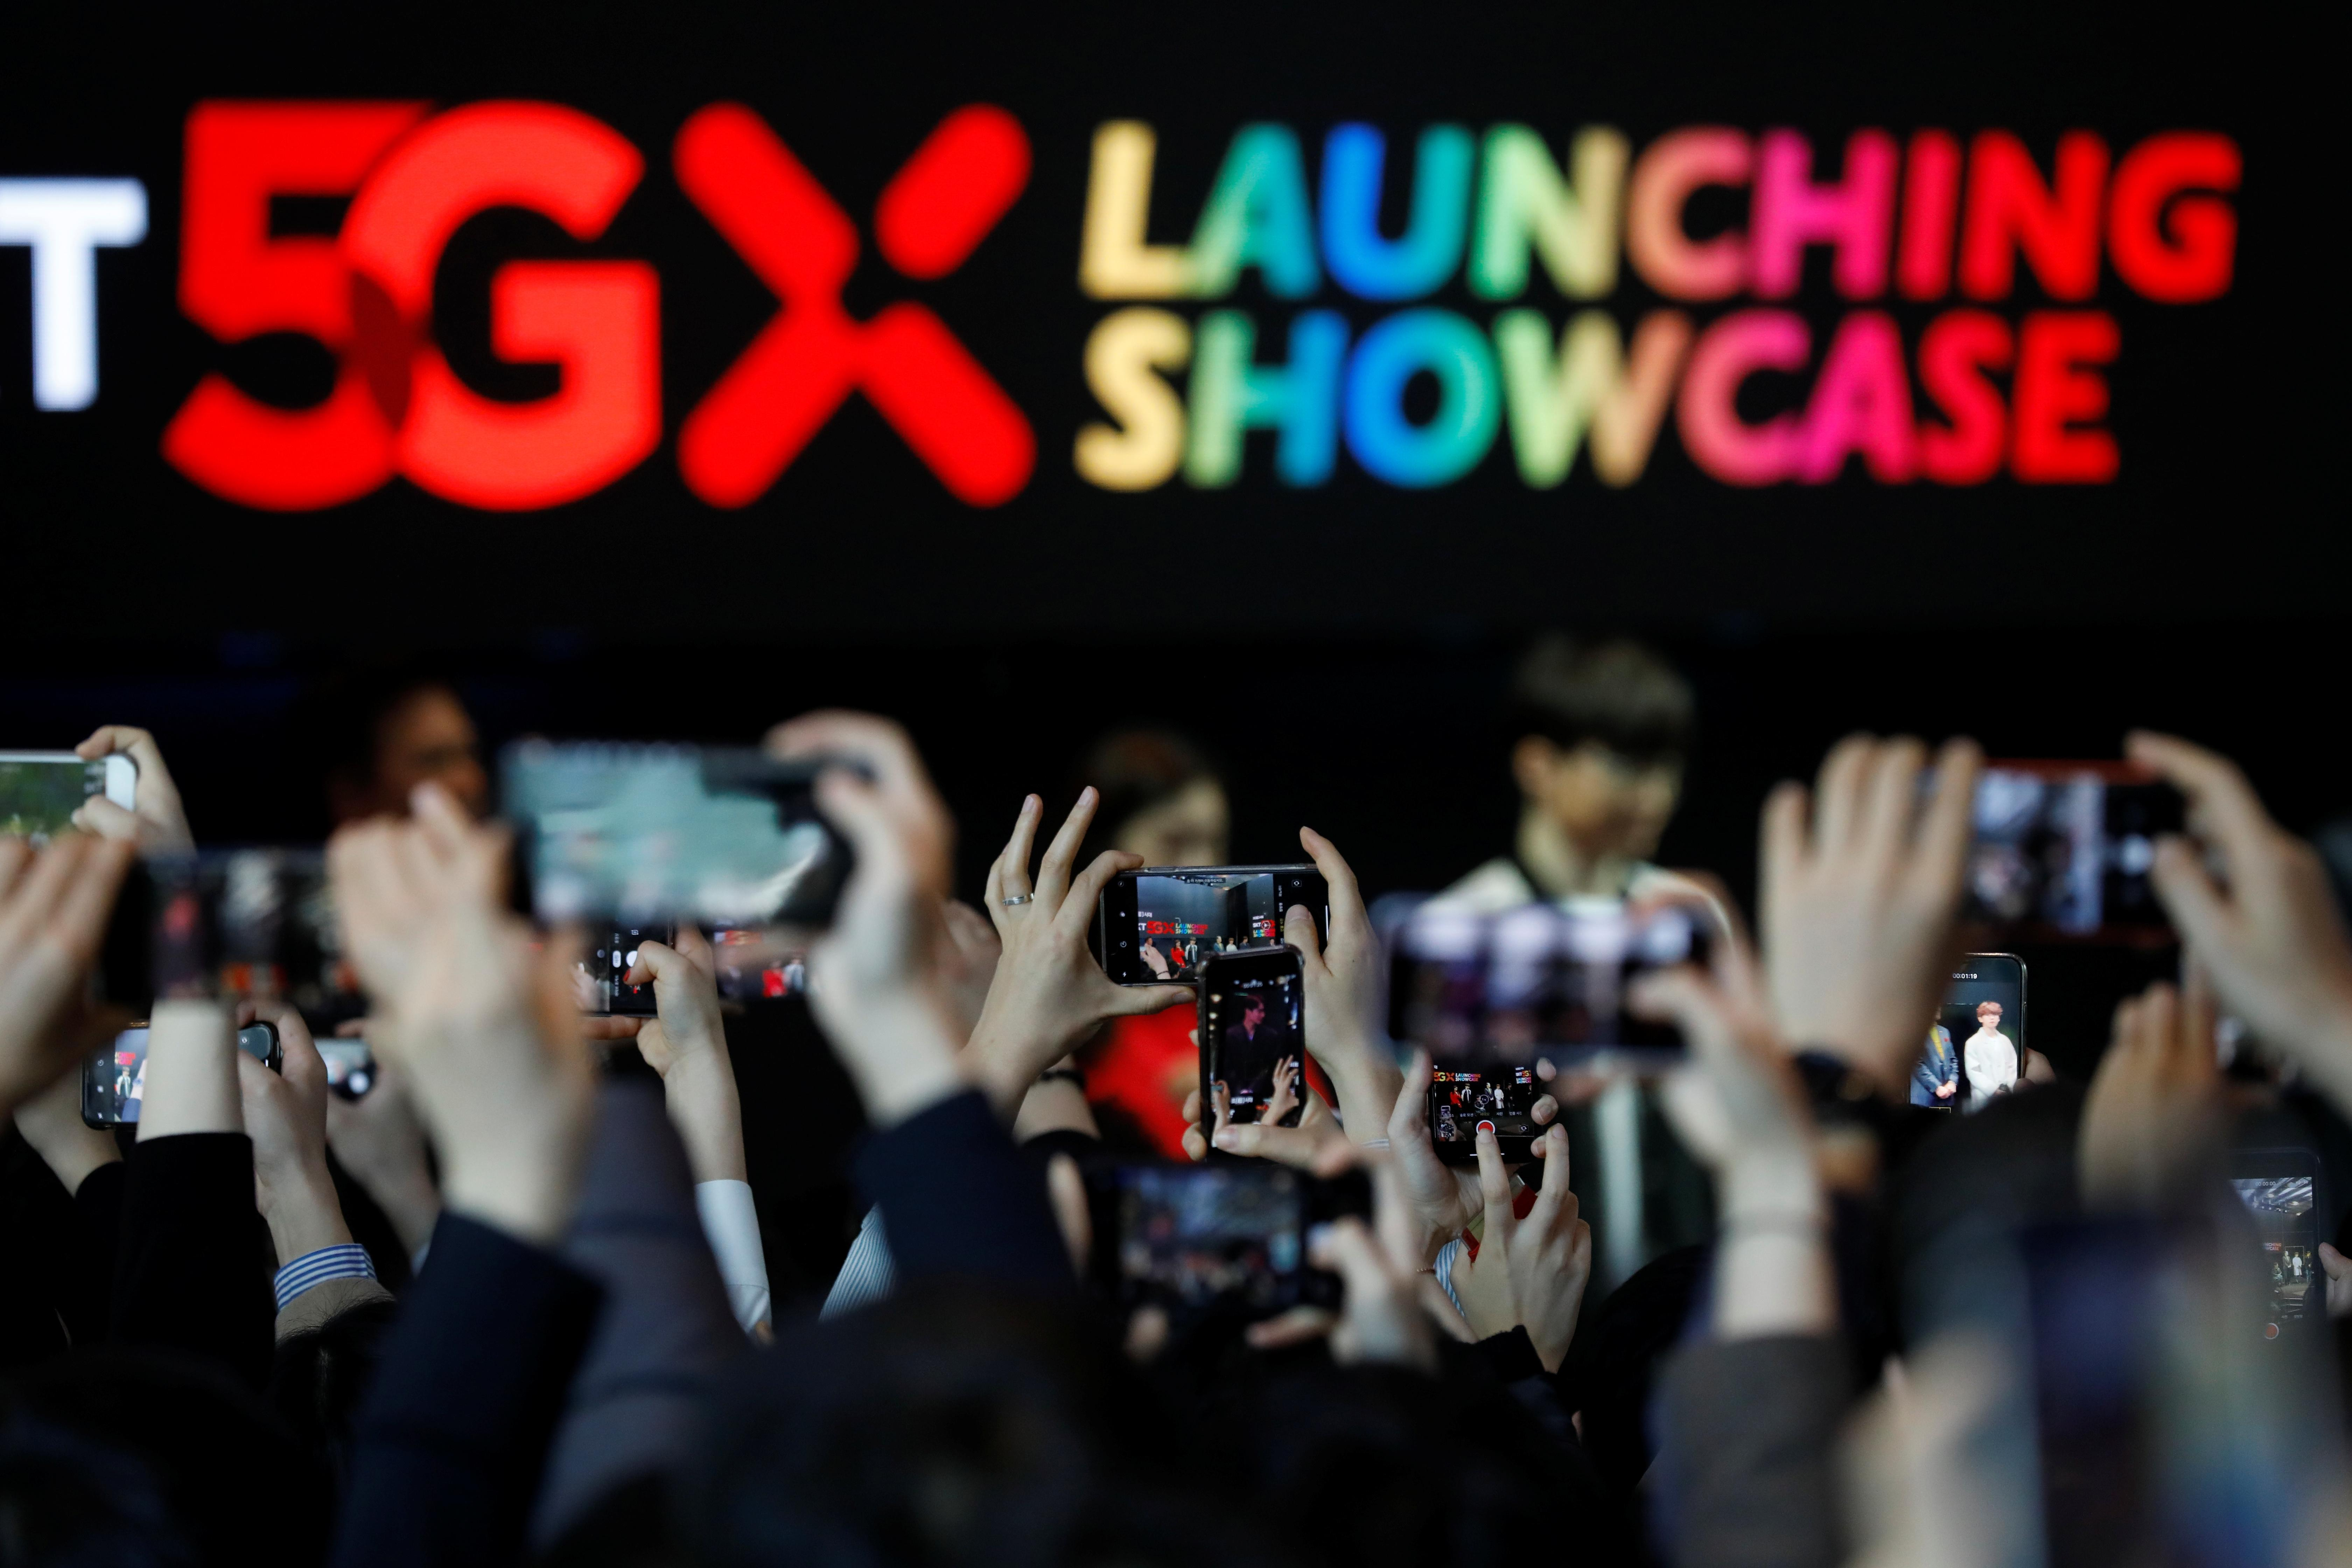 South Korea rolls out 5G services on phones, in race with U.S. and China